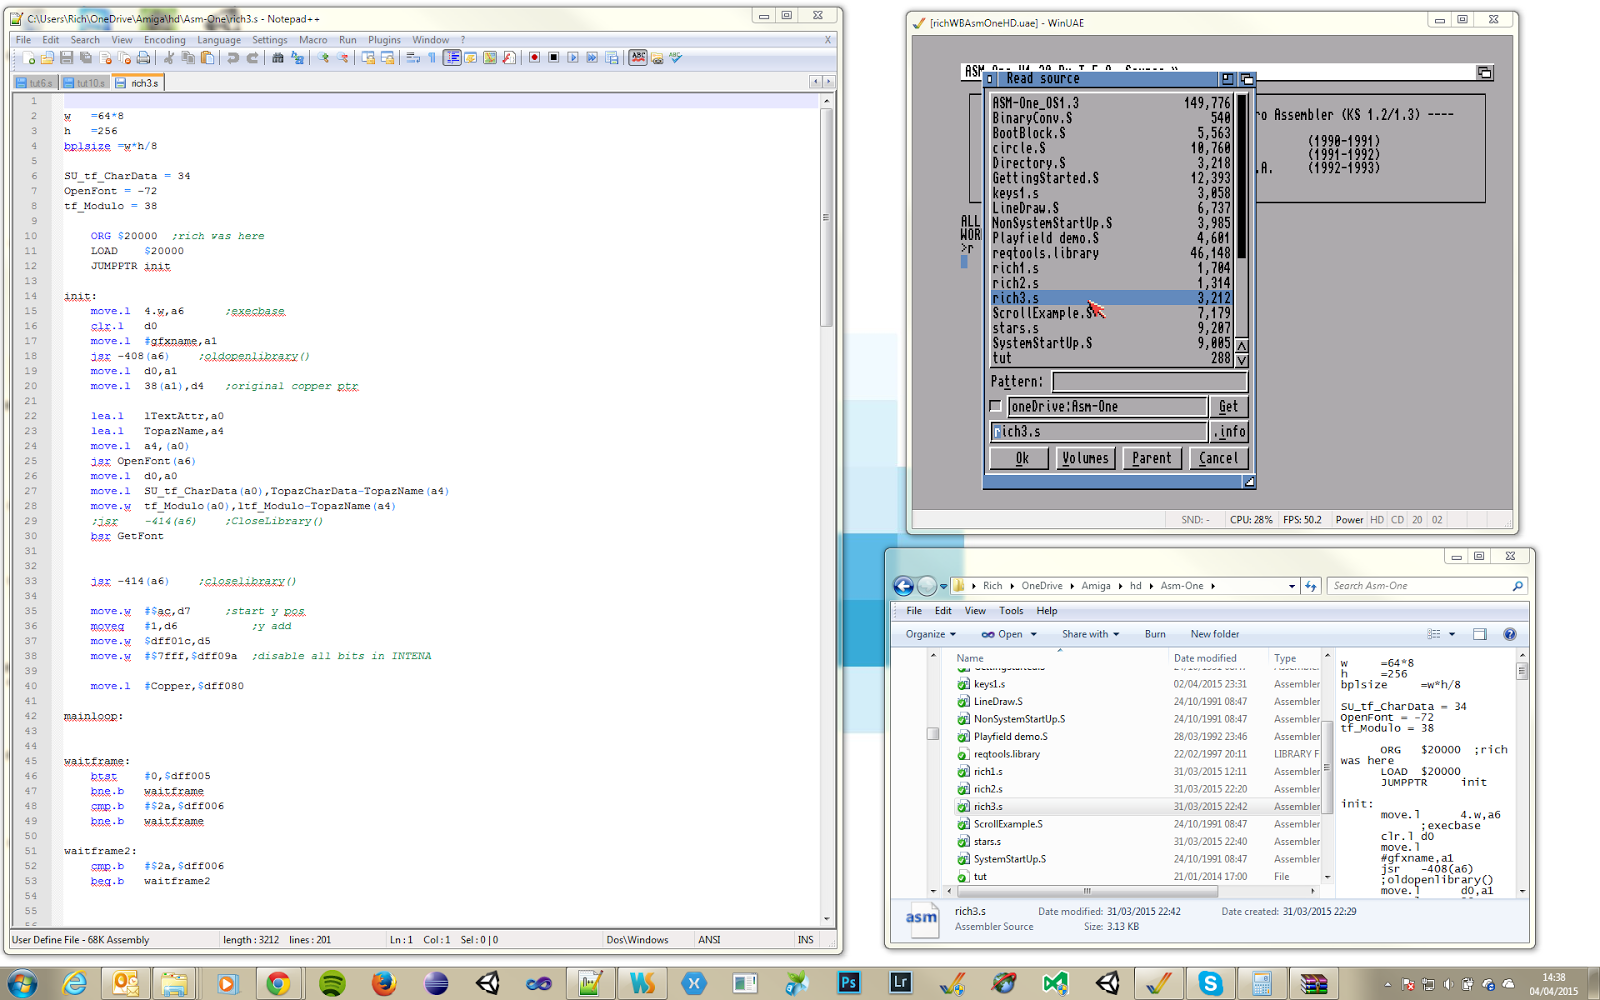 My Windows setup with WinUAE, AsmOne and Notepad++